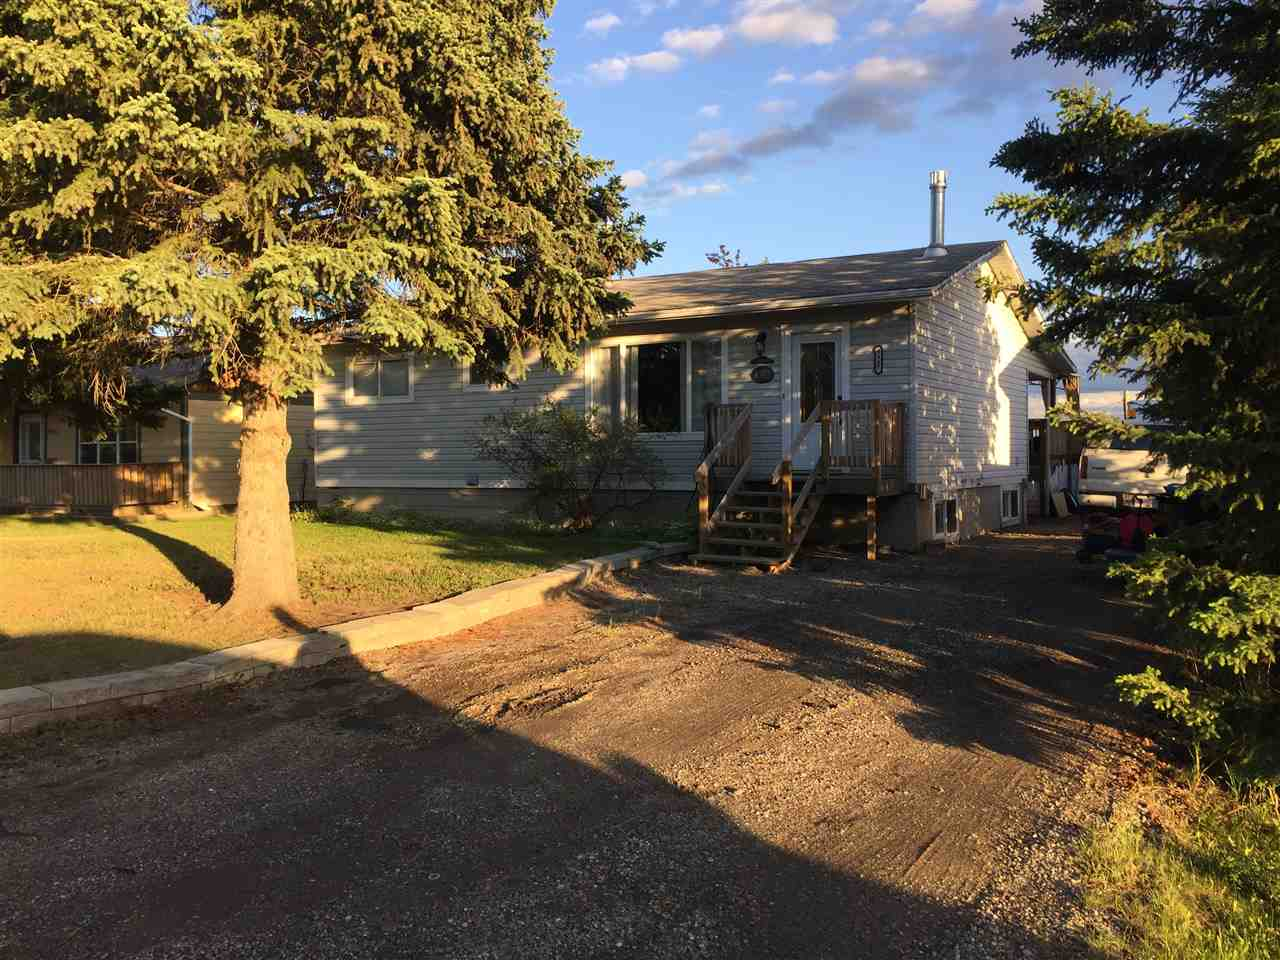 Main Photo: 9307 95 Avenue in Fort St. John: Fort St. John - City SE House for sale (Fort St. John (Zone 60))  : MLS® # R2075203